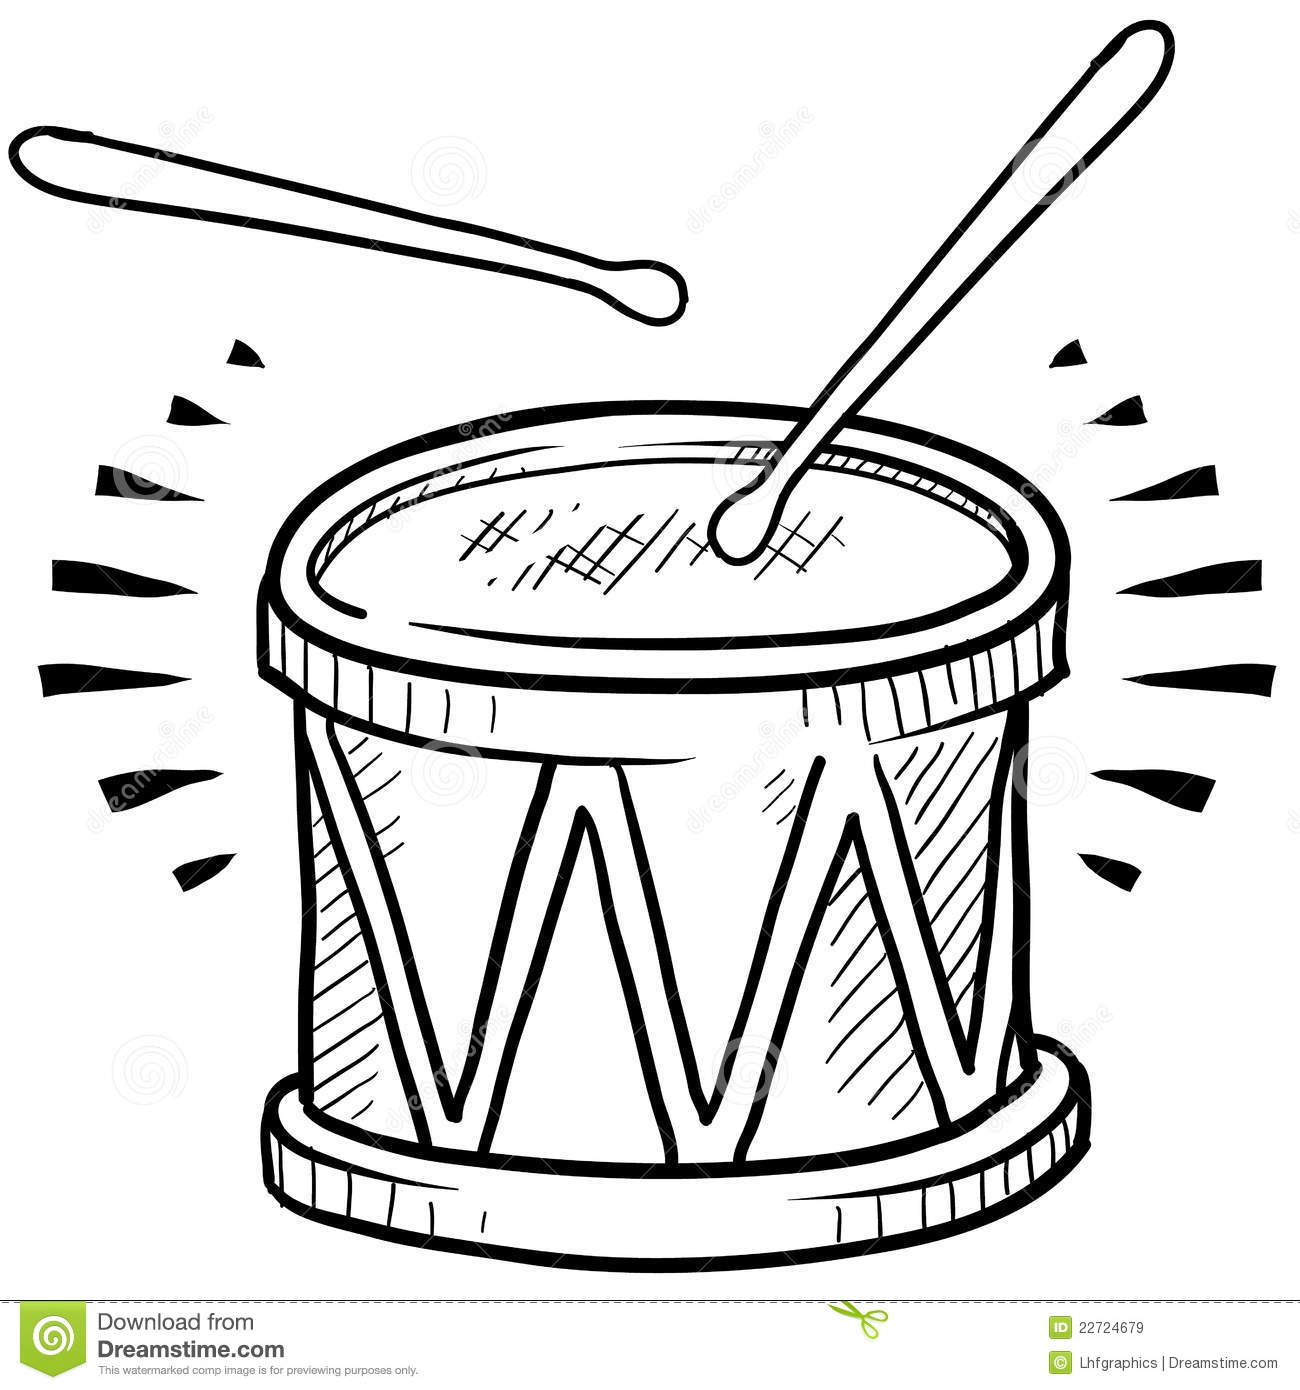 Drum Sketch Royalty Free Stock Images   Image  22724679